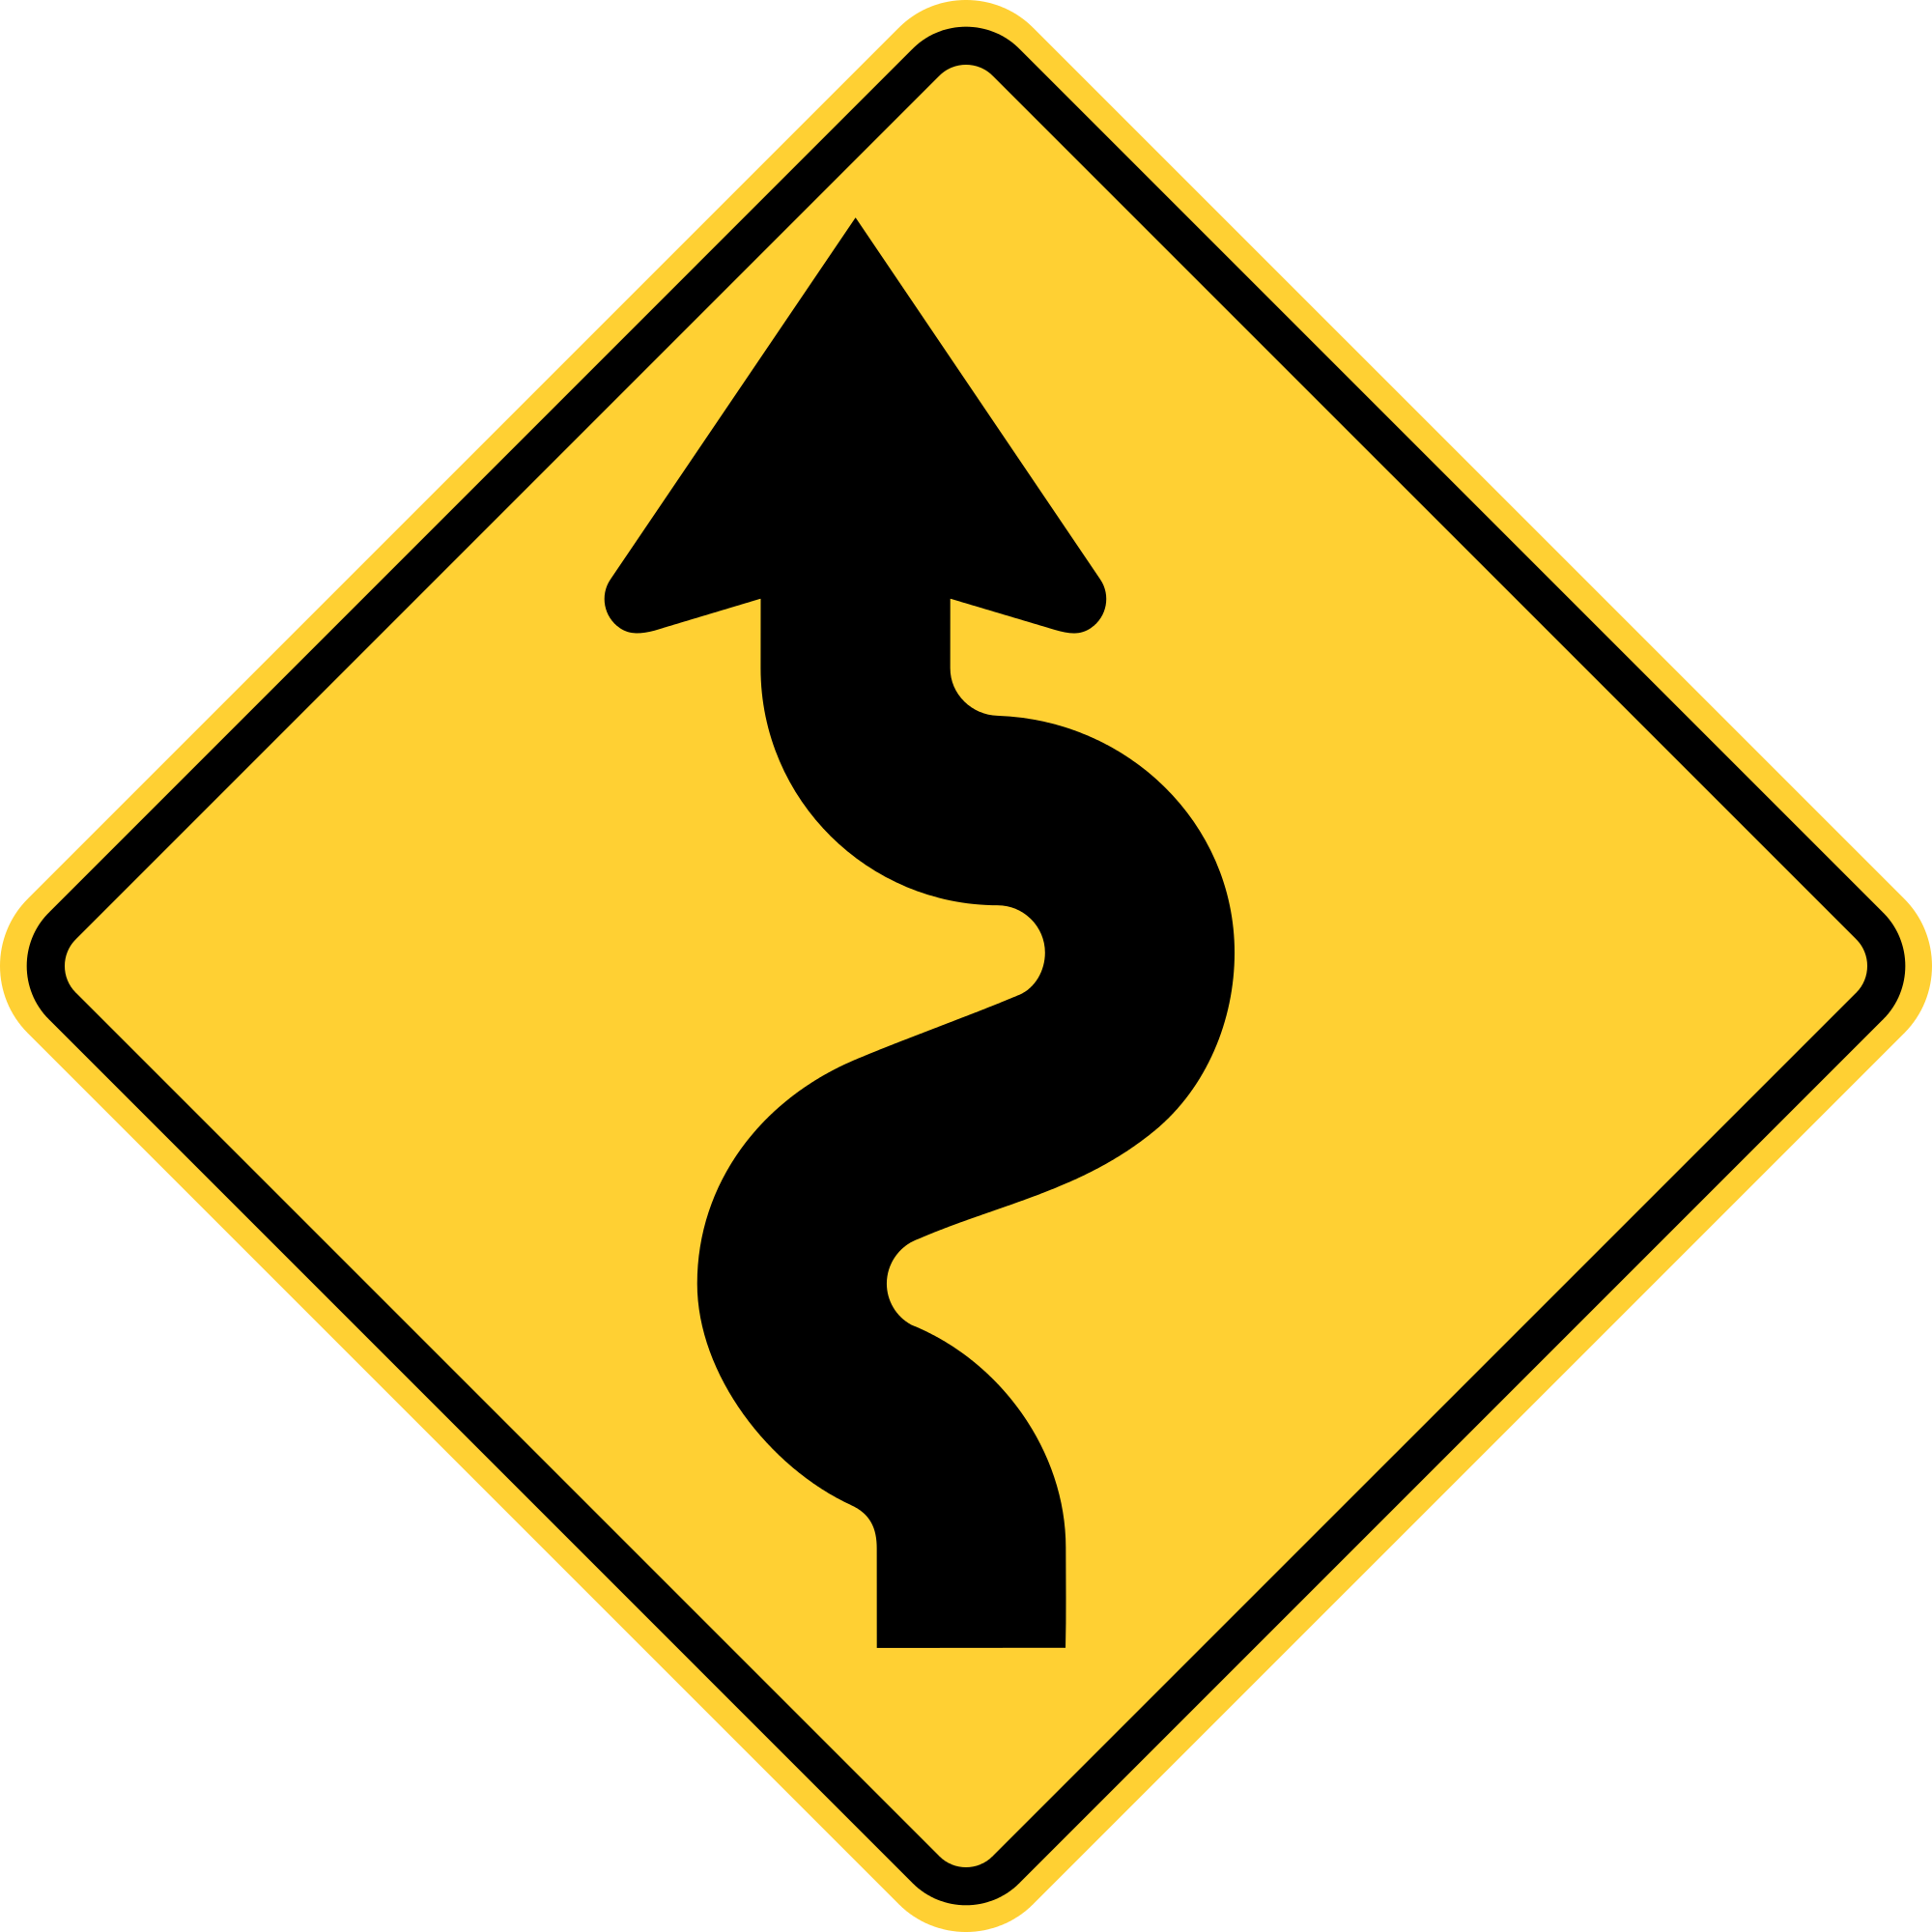 W1-5L Warning Sign